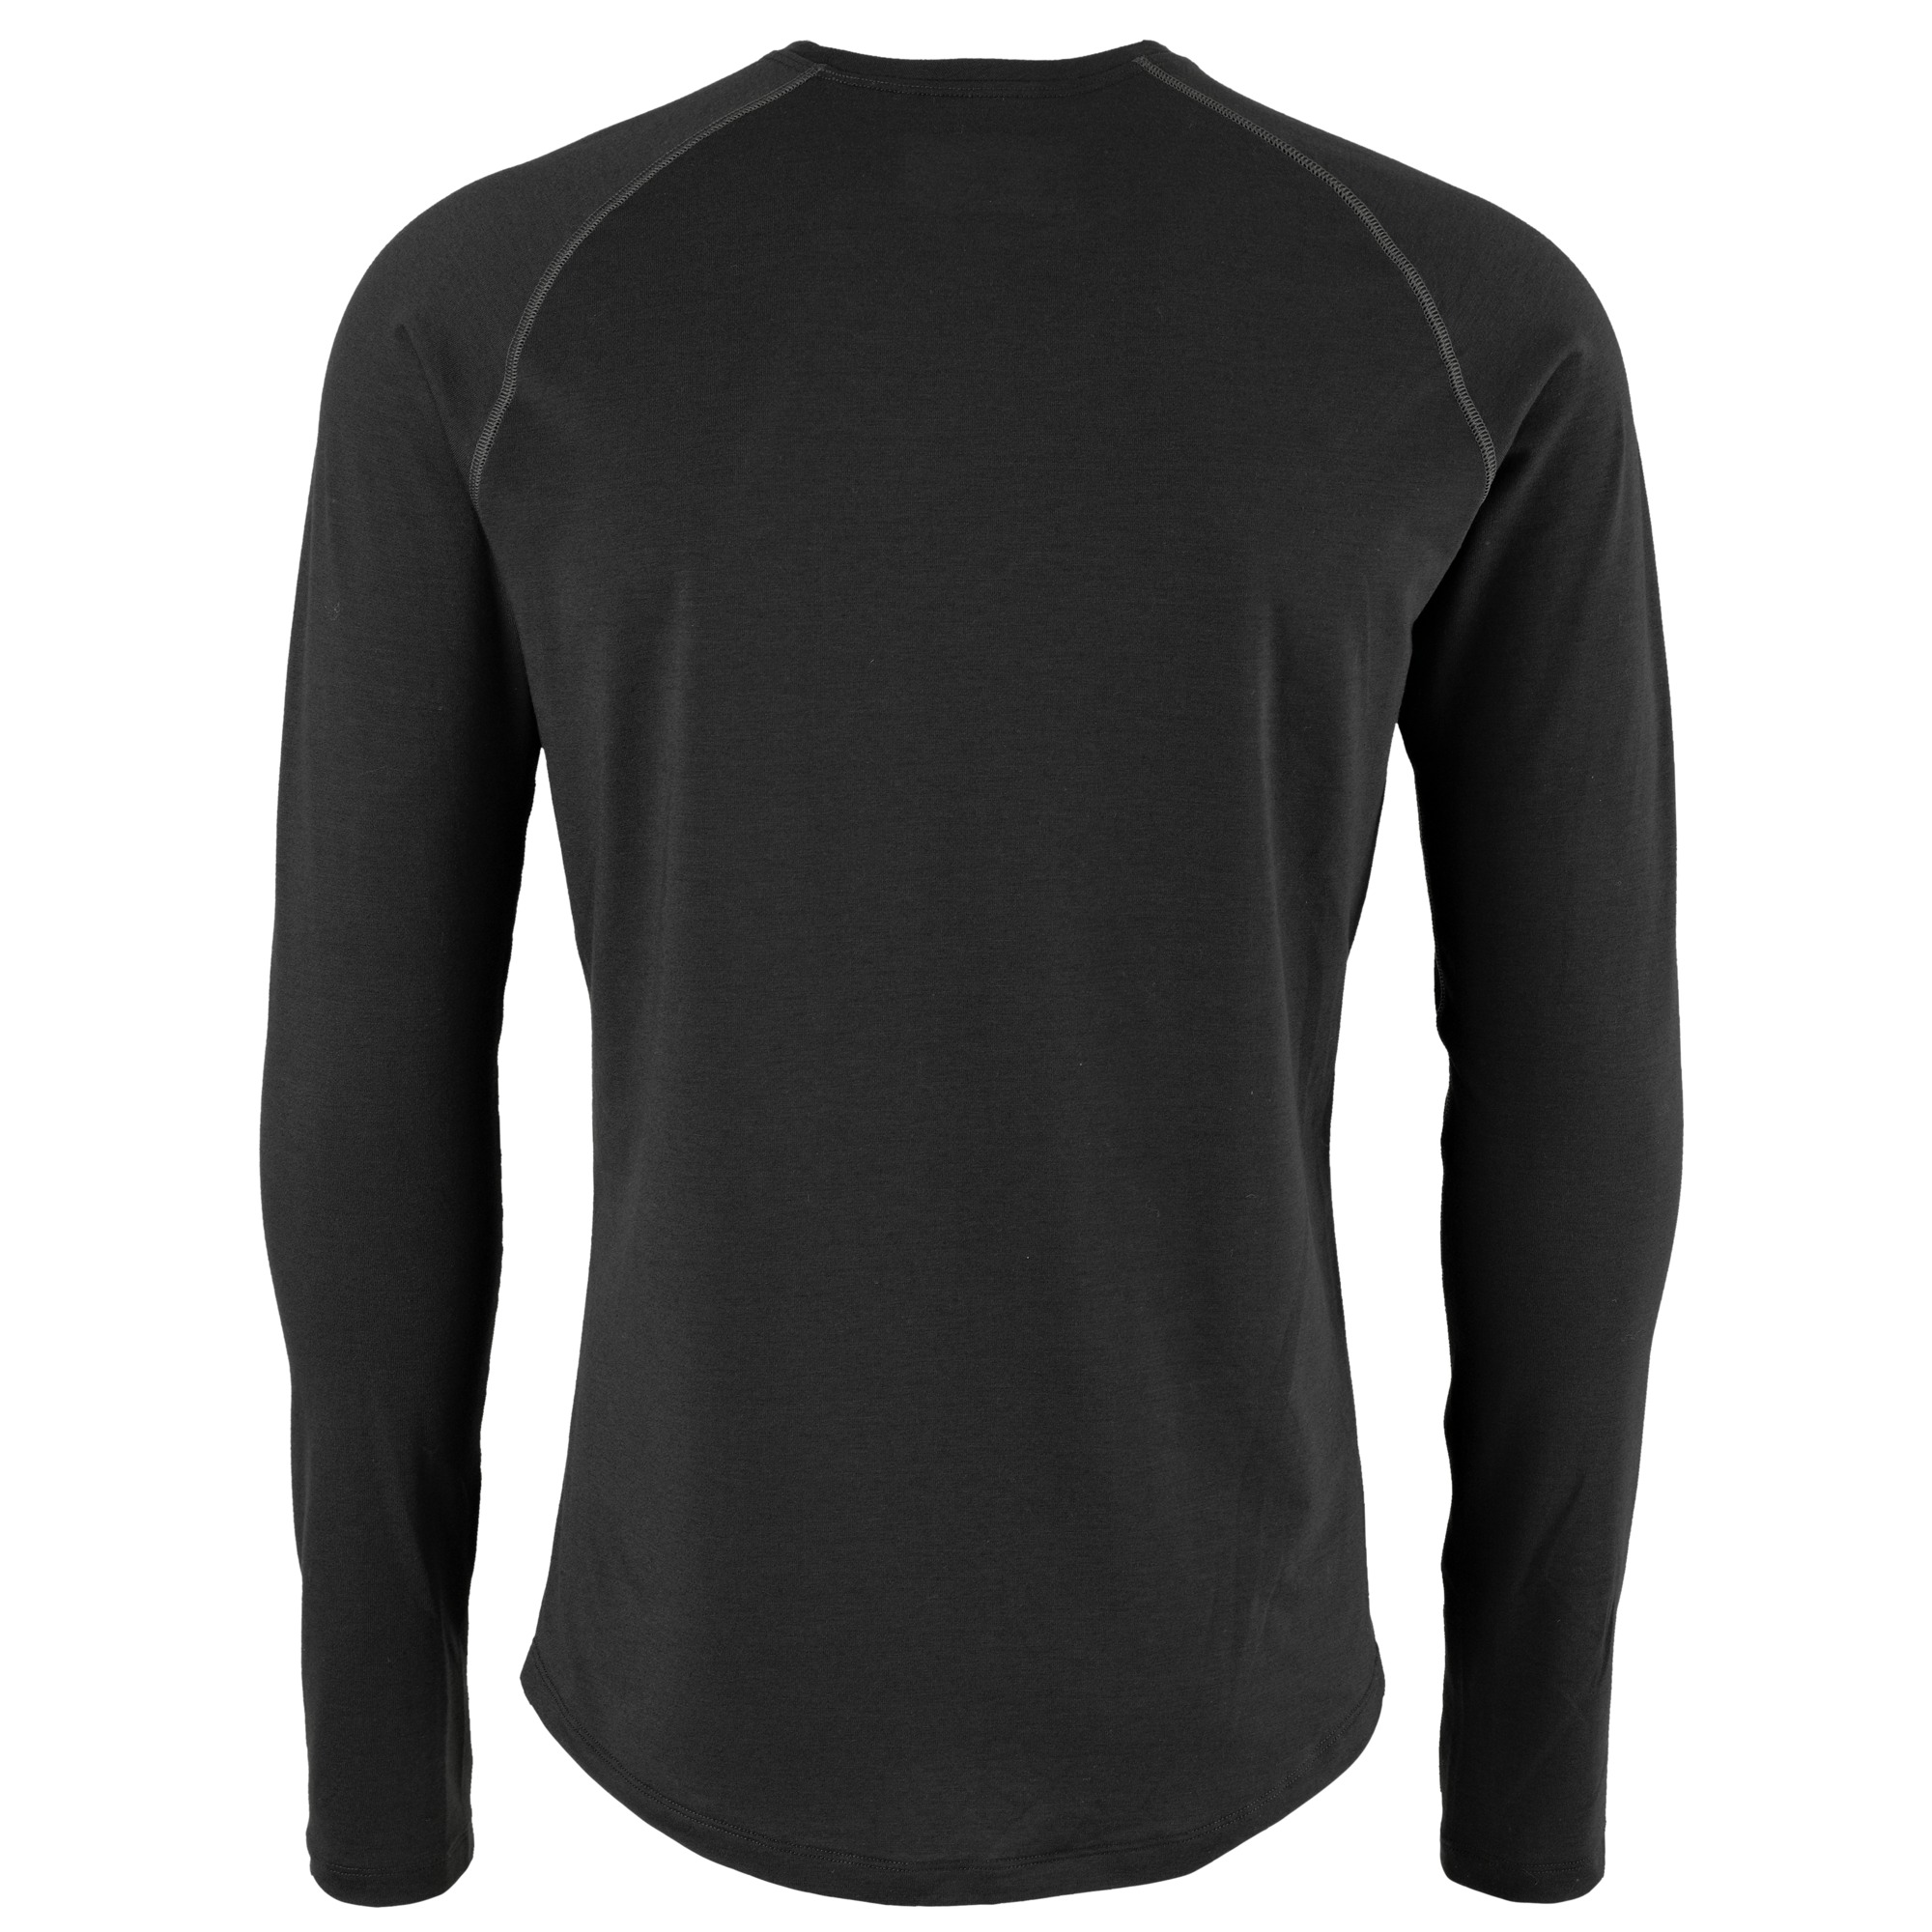 SCOTT Base DRI Crew Shirt